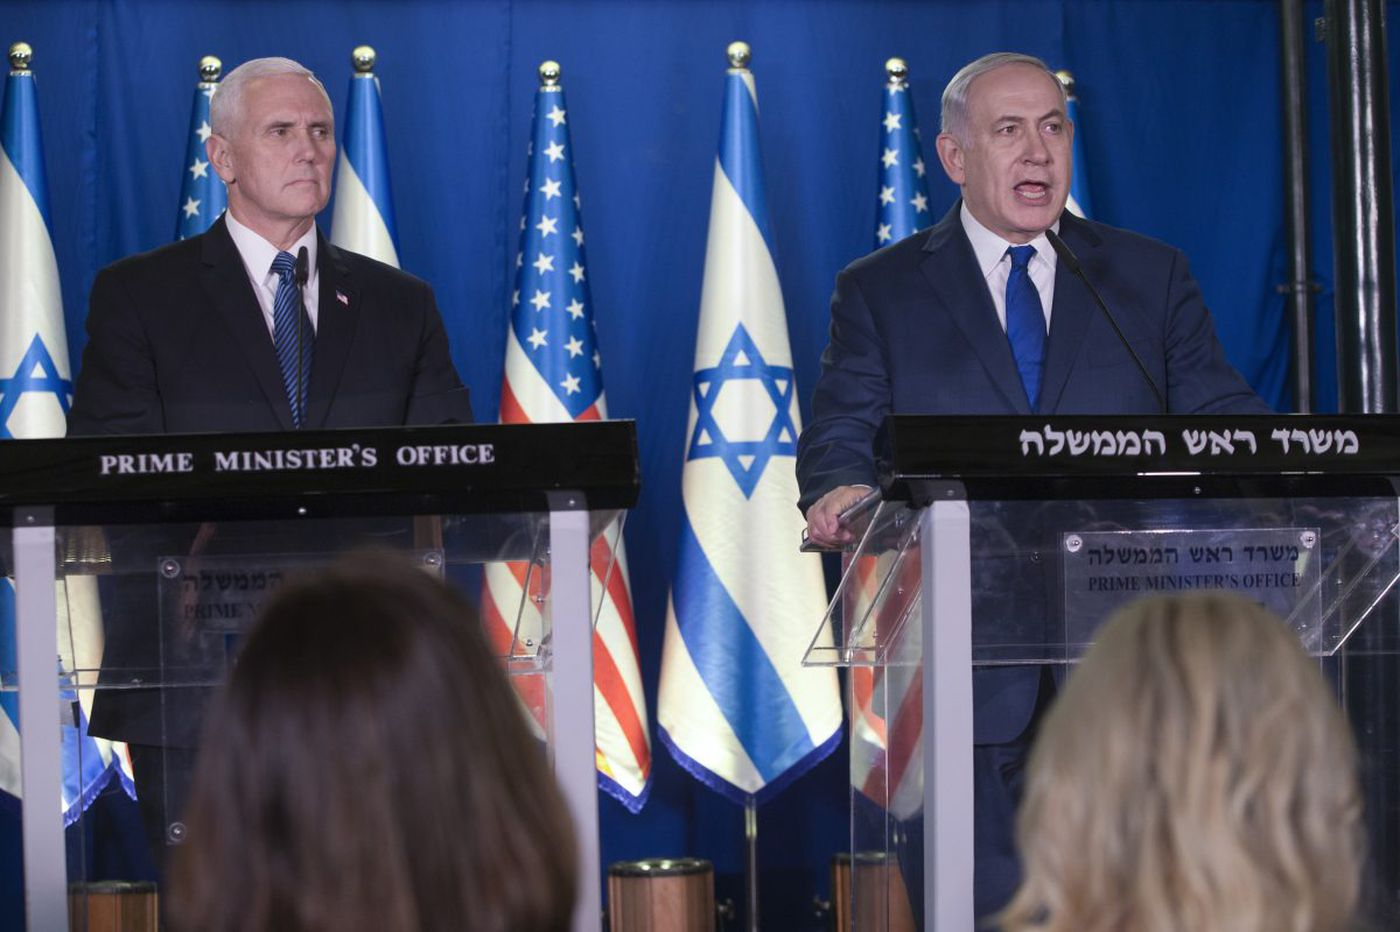 Pence's visit to Jerusalem aimed more at evangelicals at home | Trudy Rubin